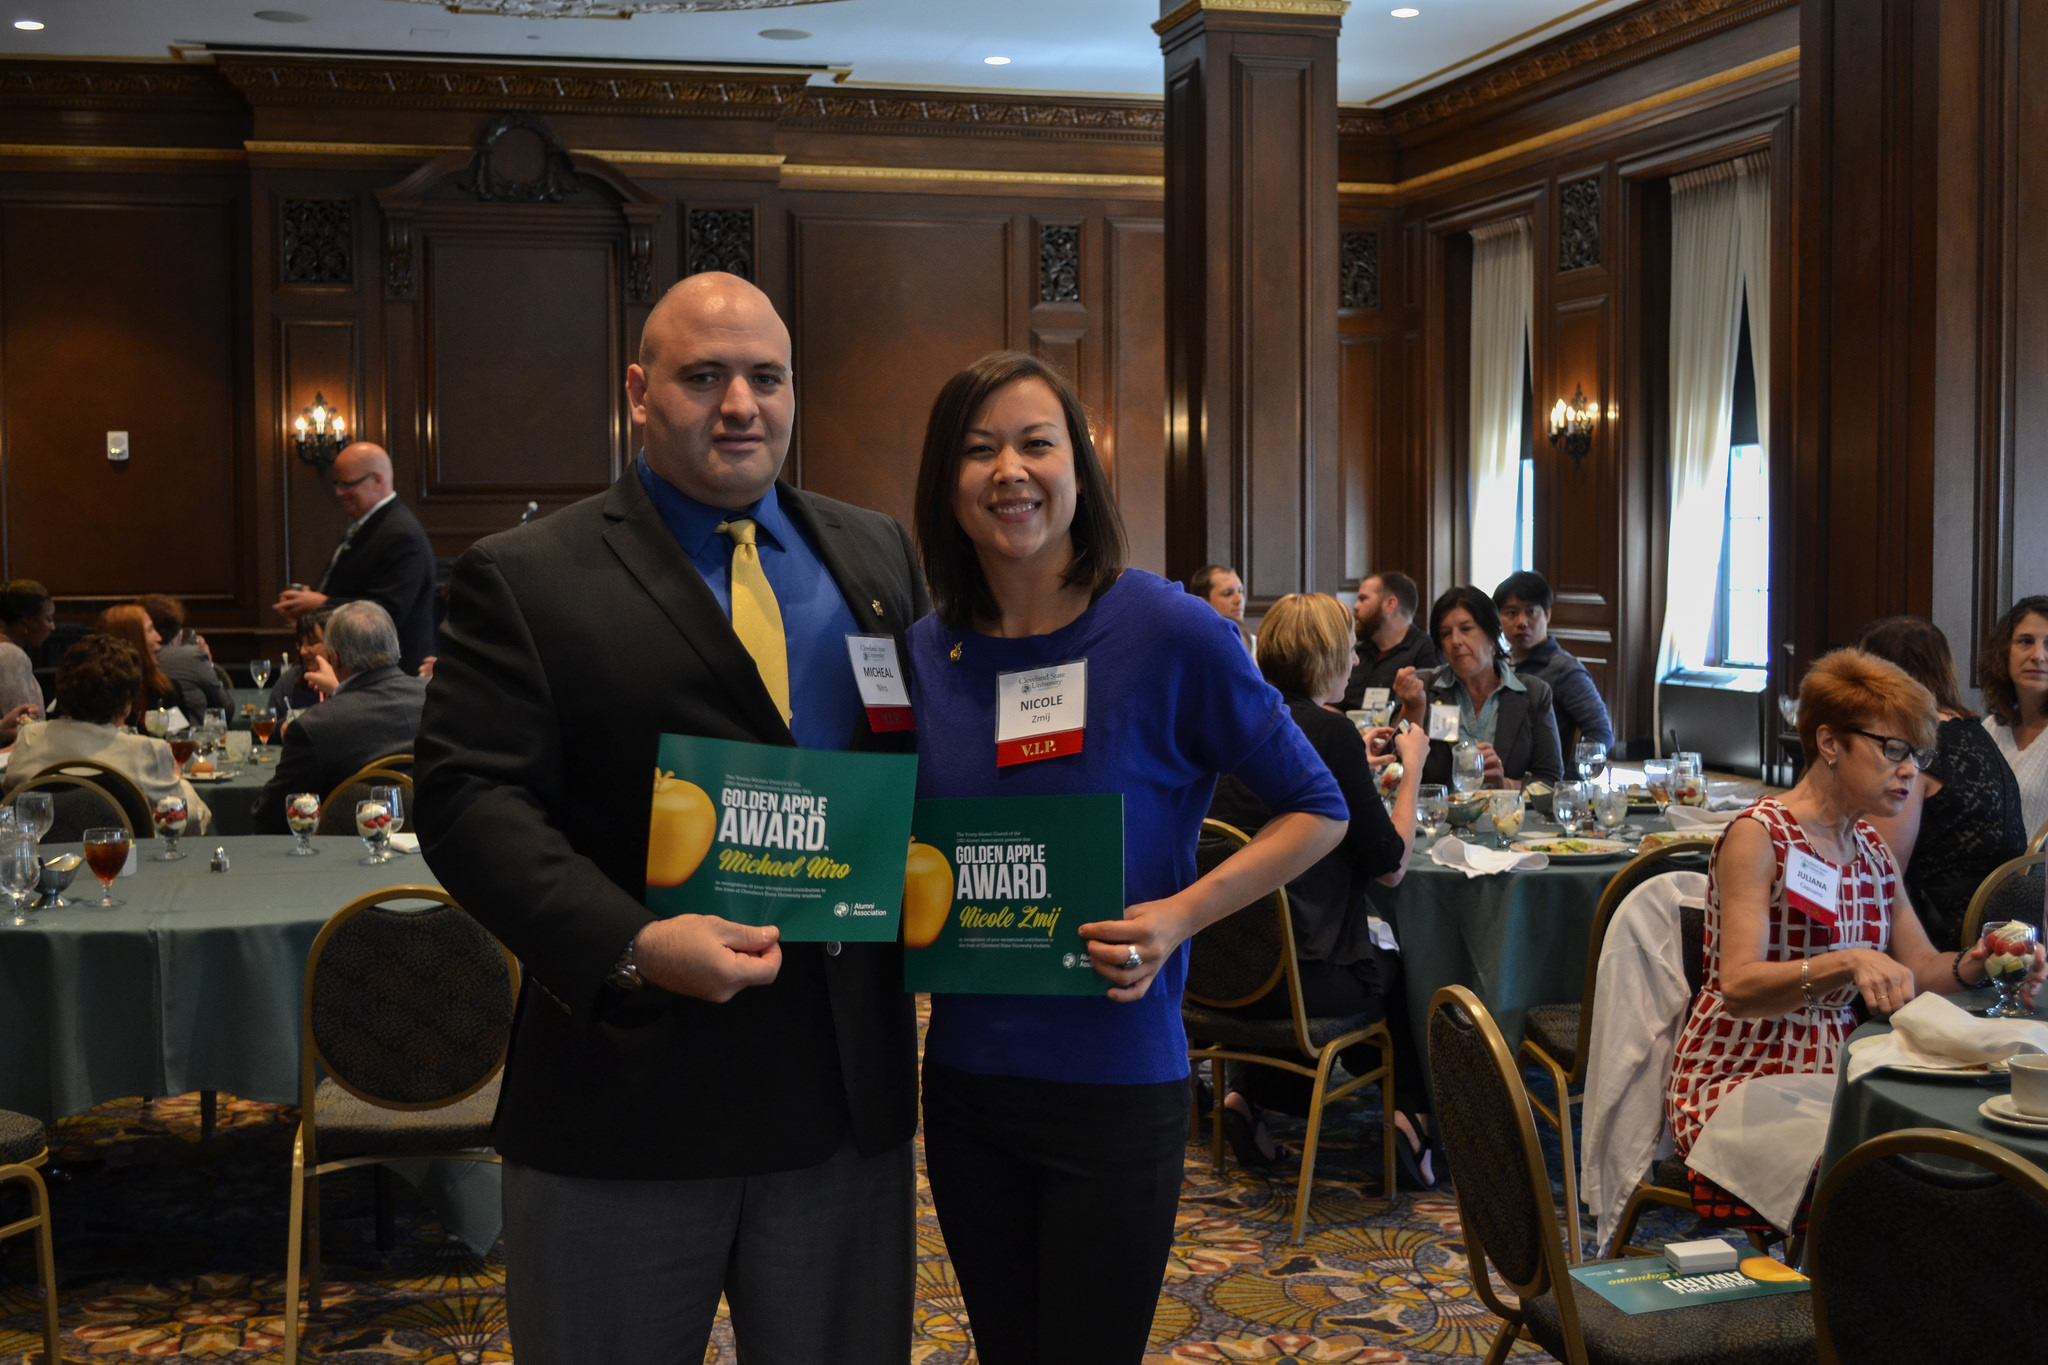 Golden Apple Awards 2015: Michael Niro and Niki Zmij